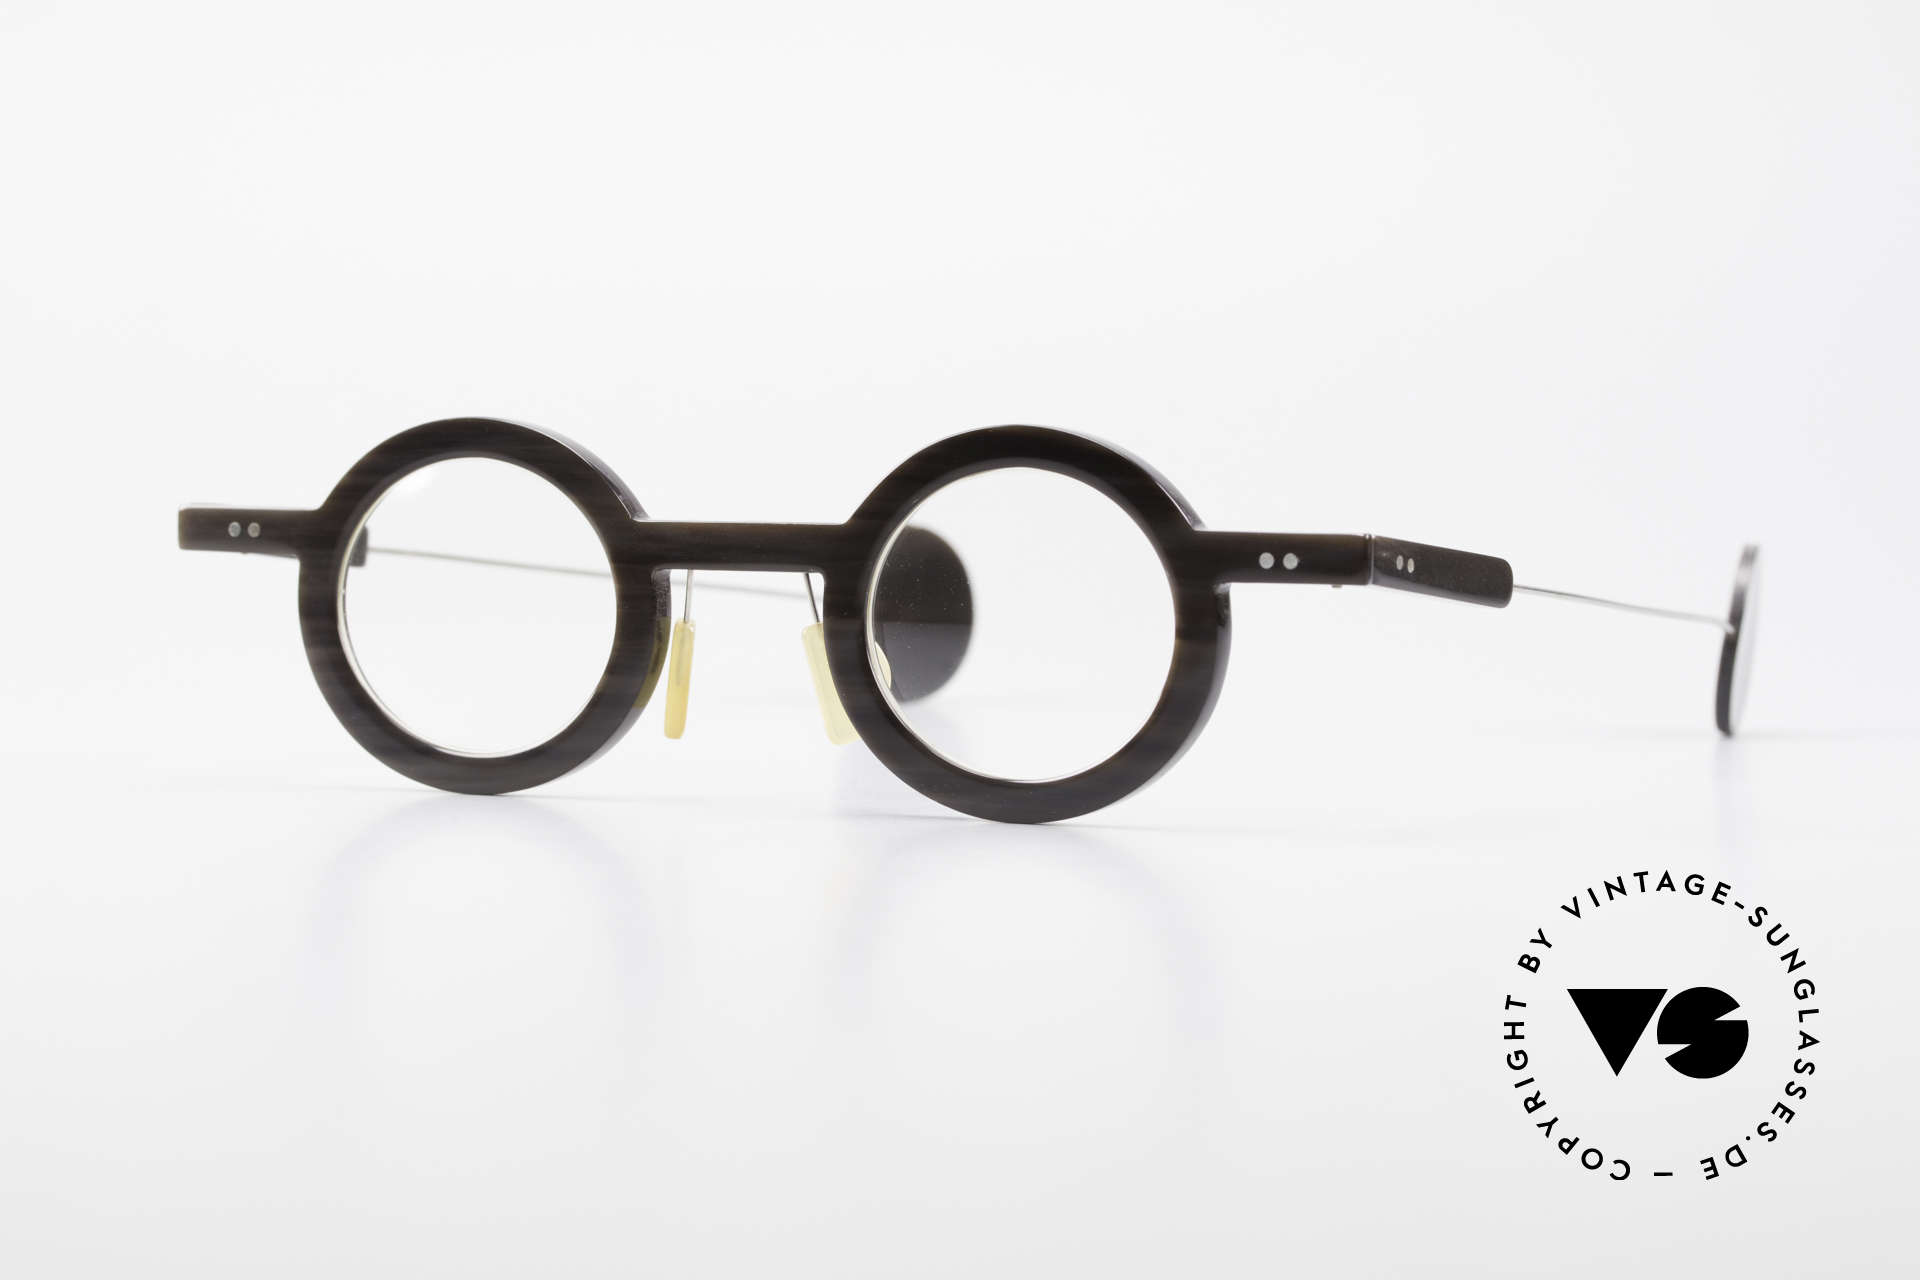 P. Klenk Rugby 014 Genuine Horn Glasses Round, striking round horn eyeglass-frame by P. Klenk from 1994, Made for Men